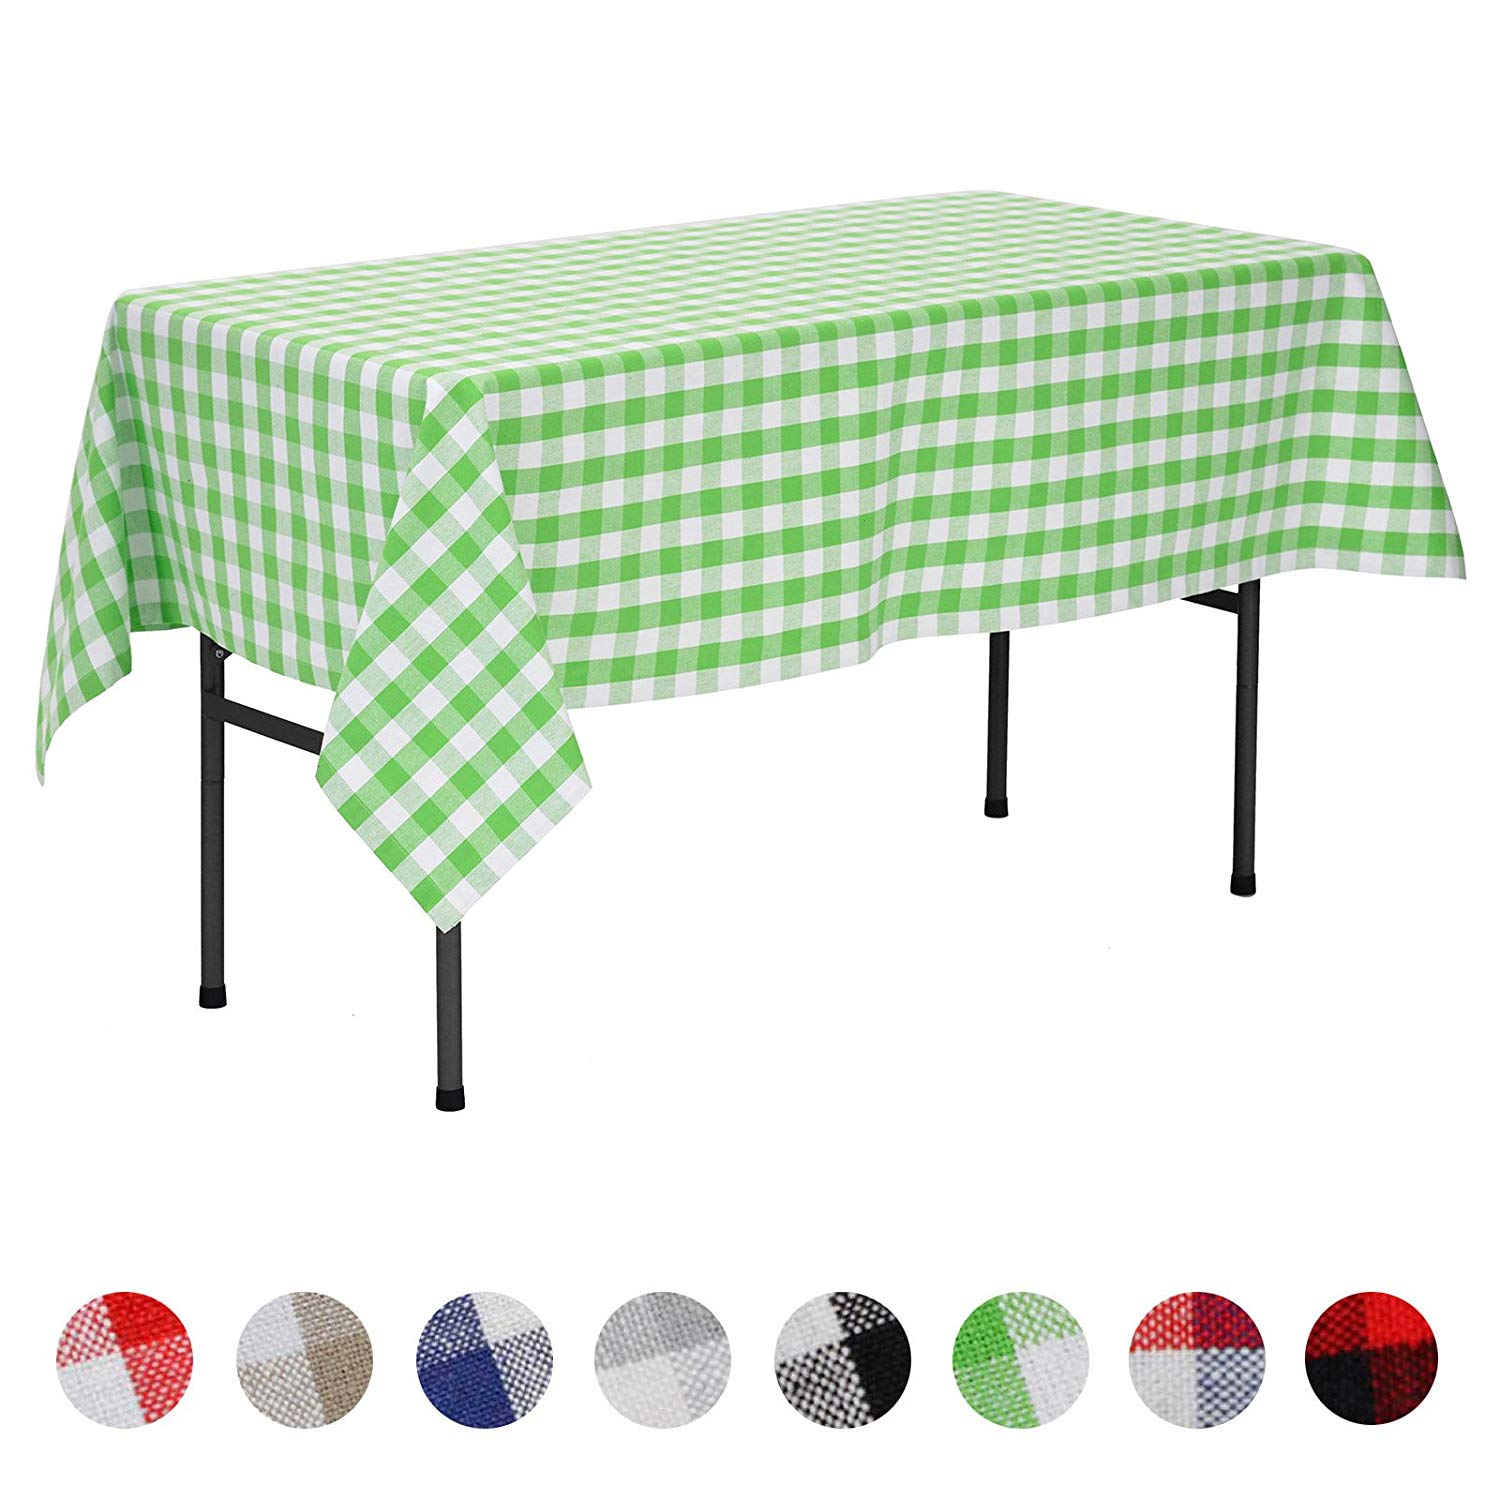 veeyoo rectangular plaid check tablecloth gingham round accent table cloths cotton for home kitchen party indoor outdoor use inch seats people lime white world furniture designer